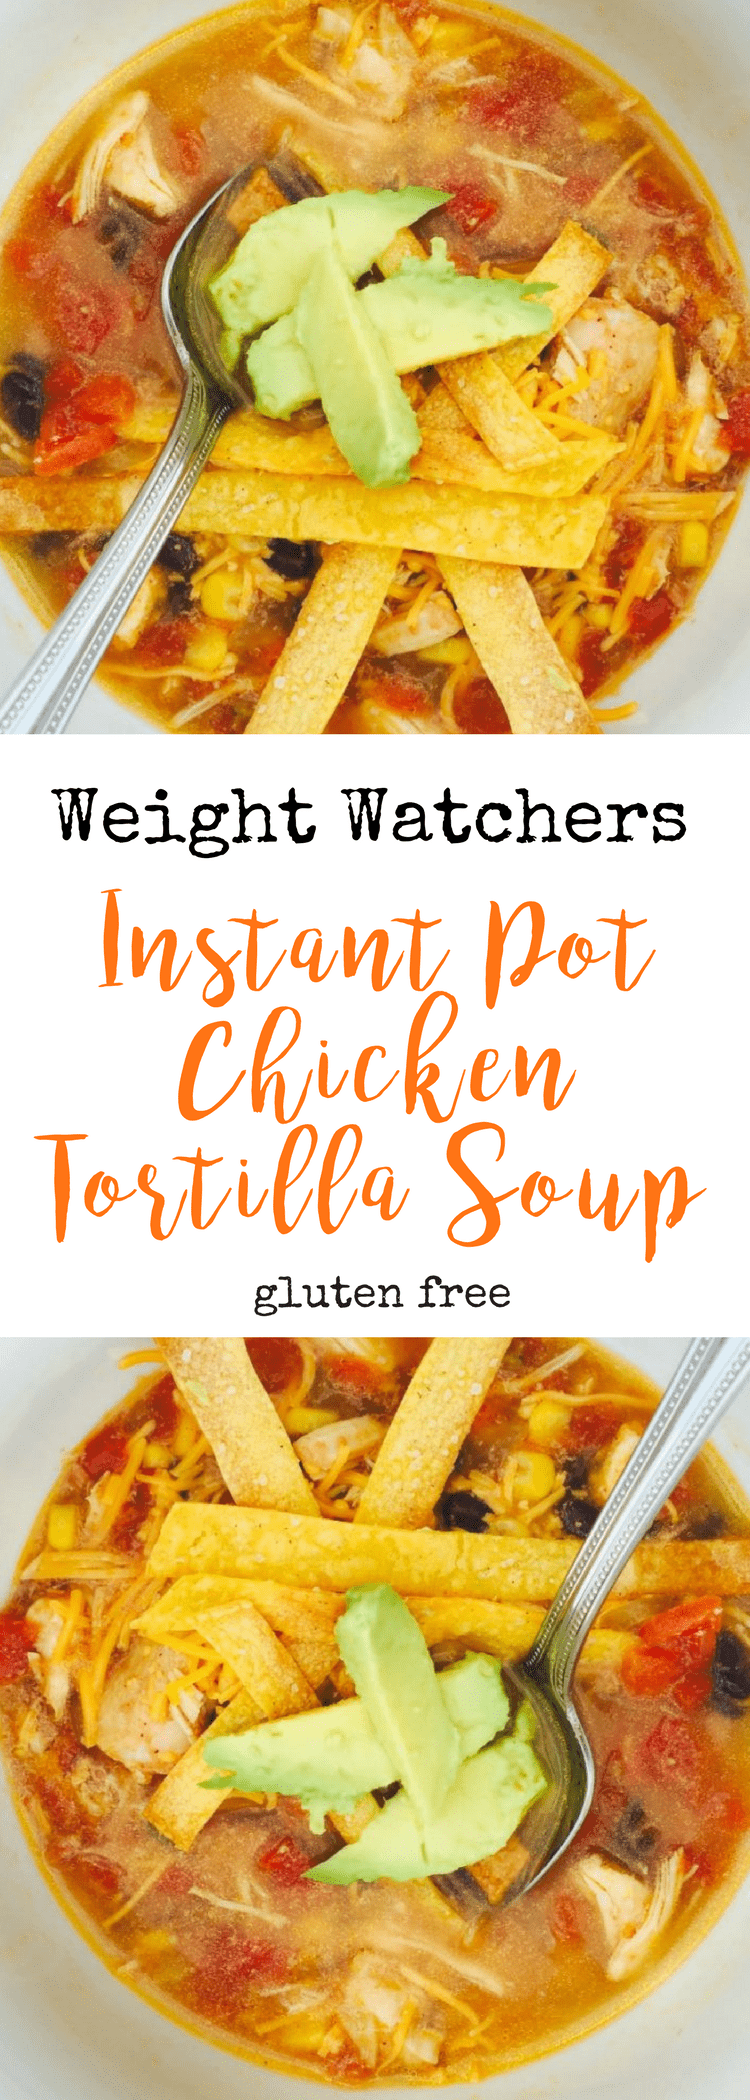 Weight Watchers Instant Pot Chicken Tortilla Soup | Confessions of a Fit Foodie